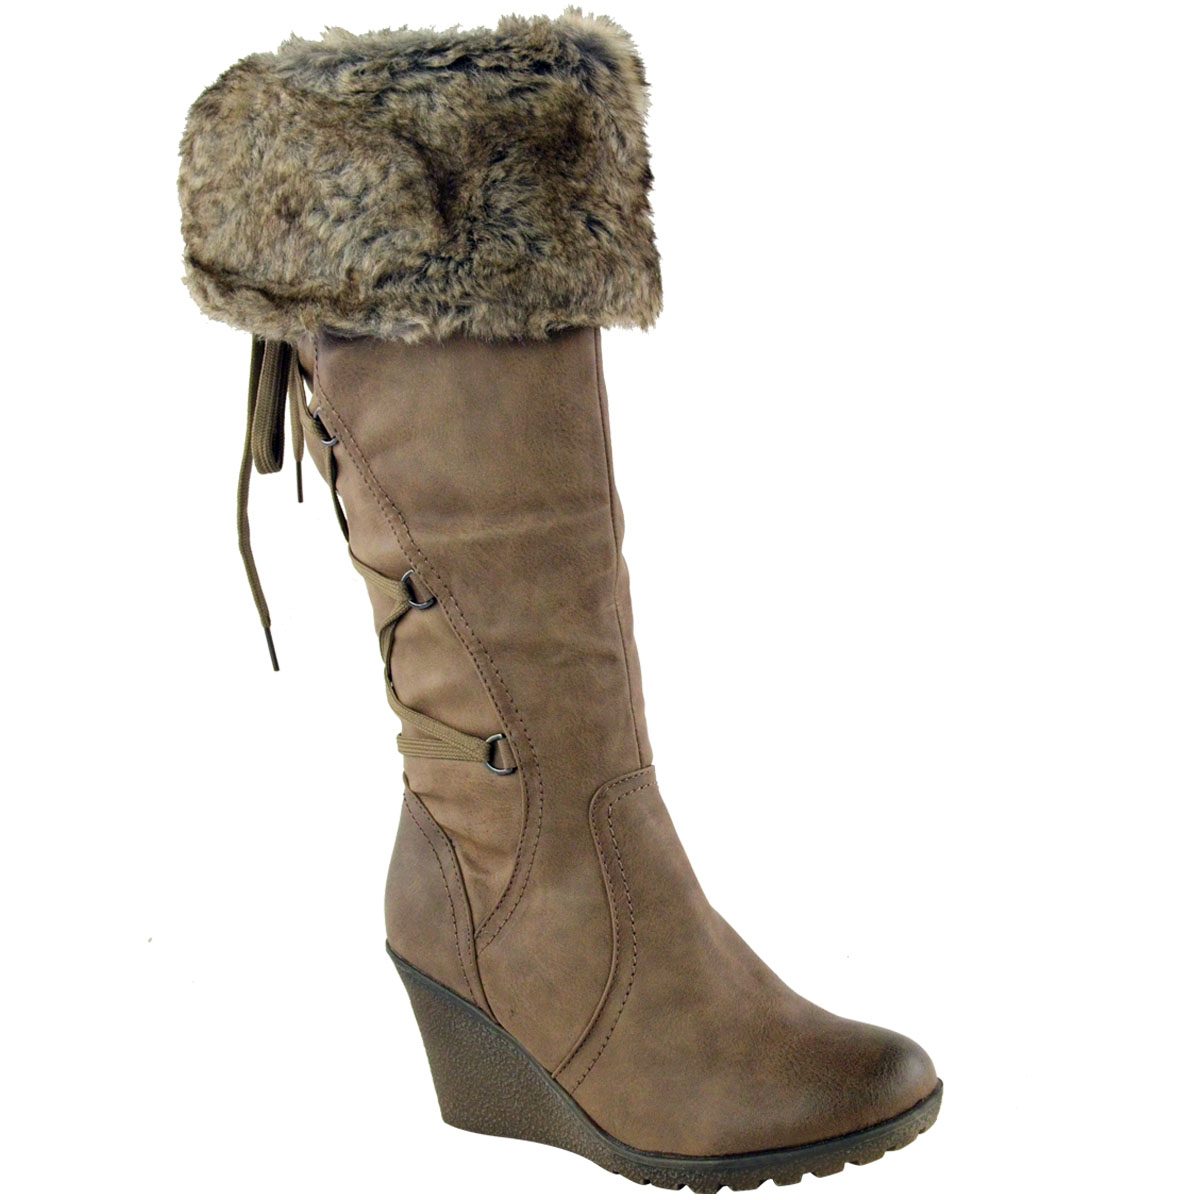 WOMENS-LADIES-MID-WEDGE-HIGH-HEEL-FUR-LINED-WARM-WINTER-KNEE-CALF-ZIP-BOOTS-SIZE thumbnail 11